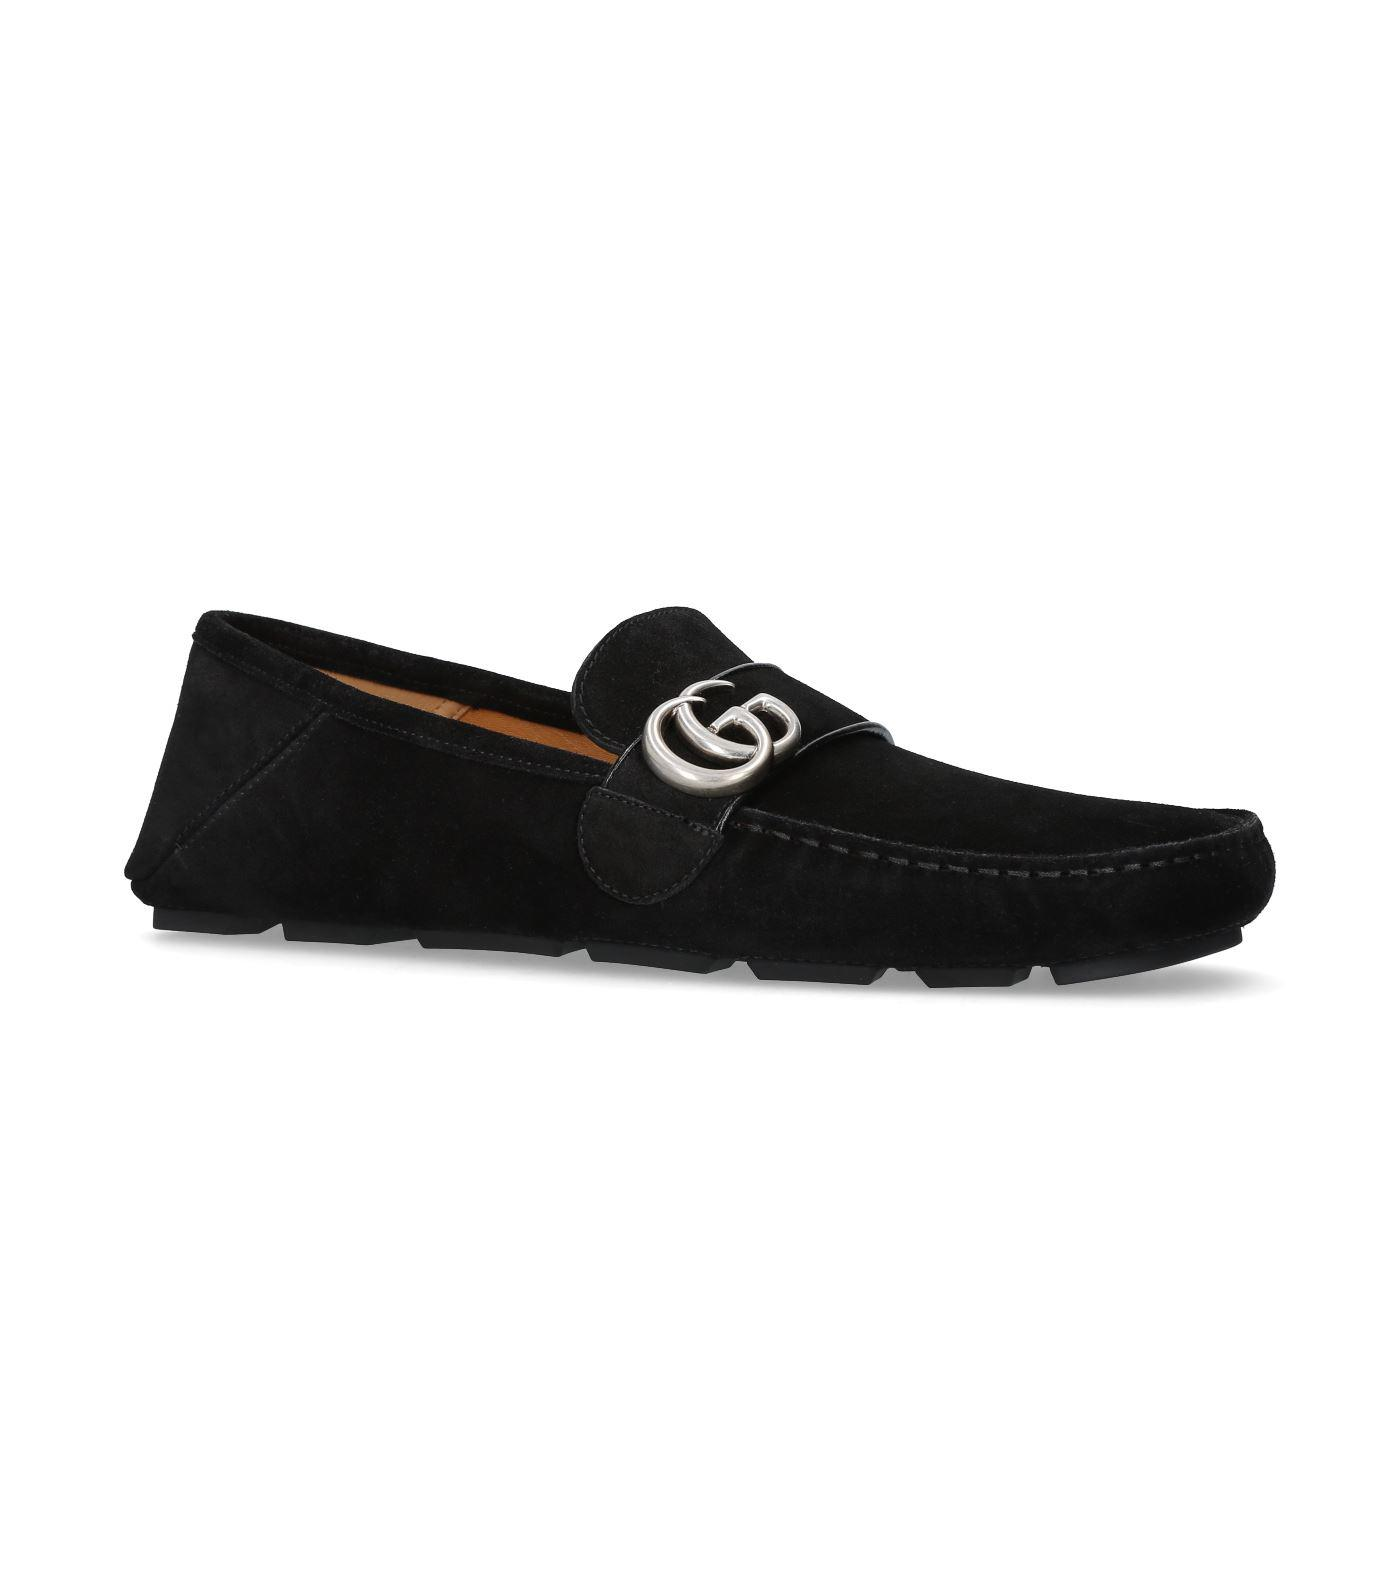 Gucci  Men's Black Noel Suede Driving Loafers